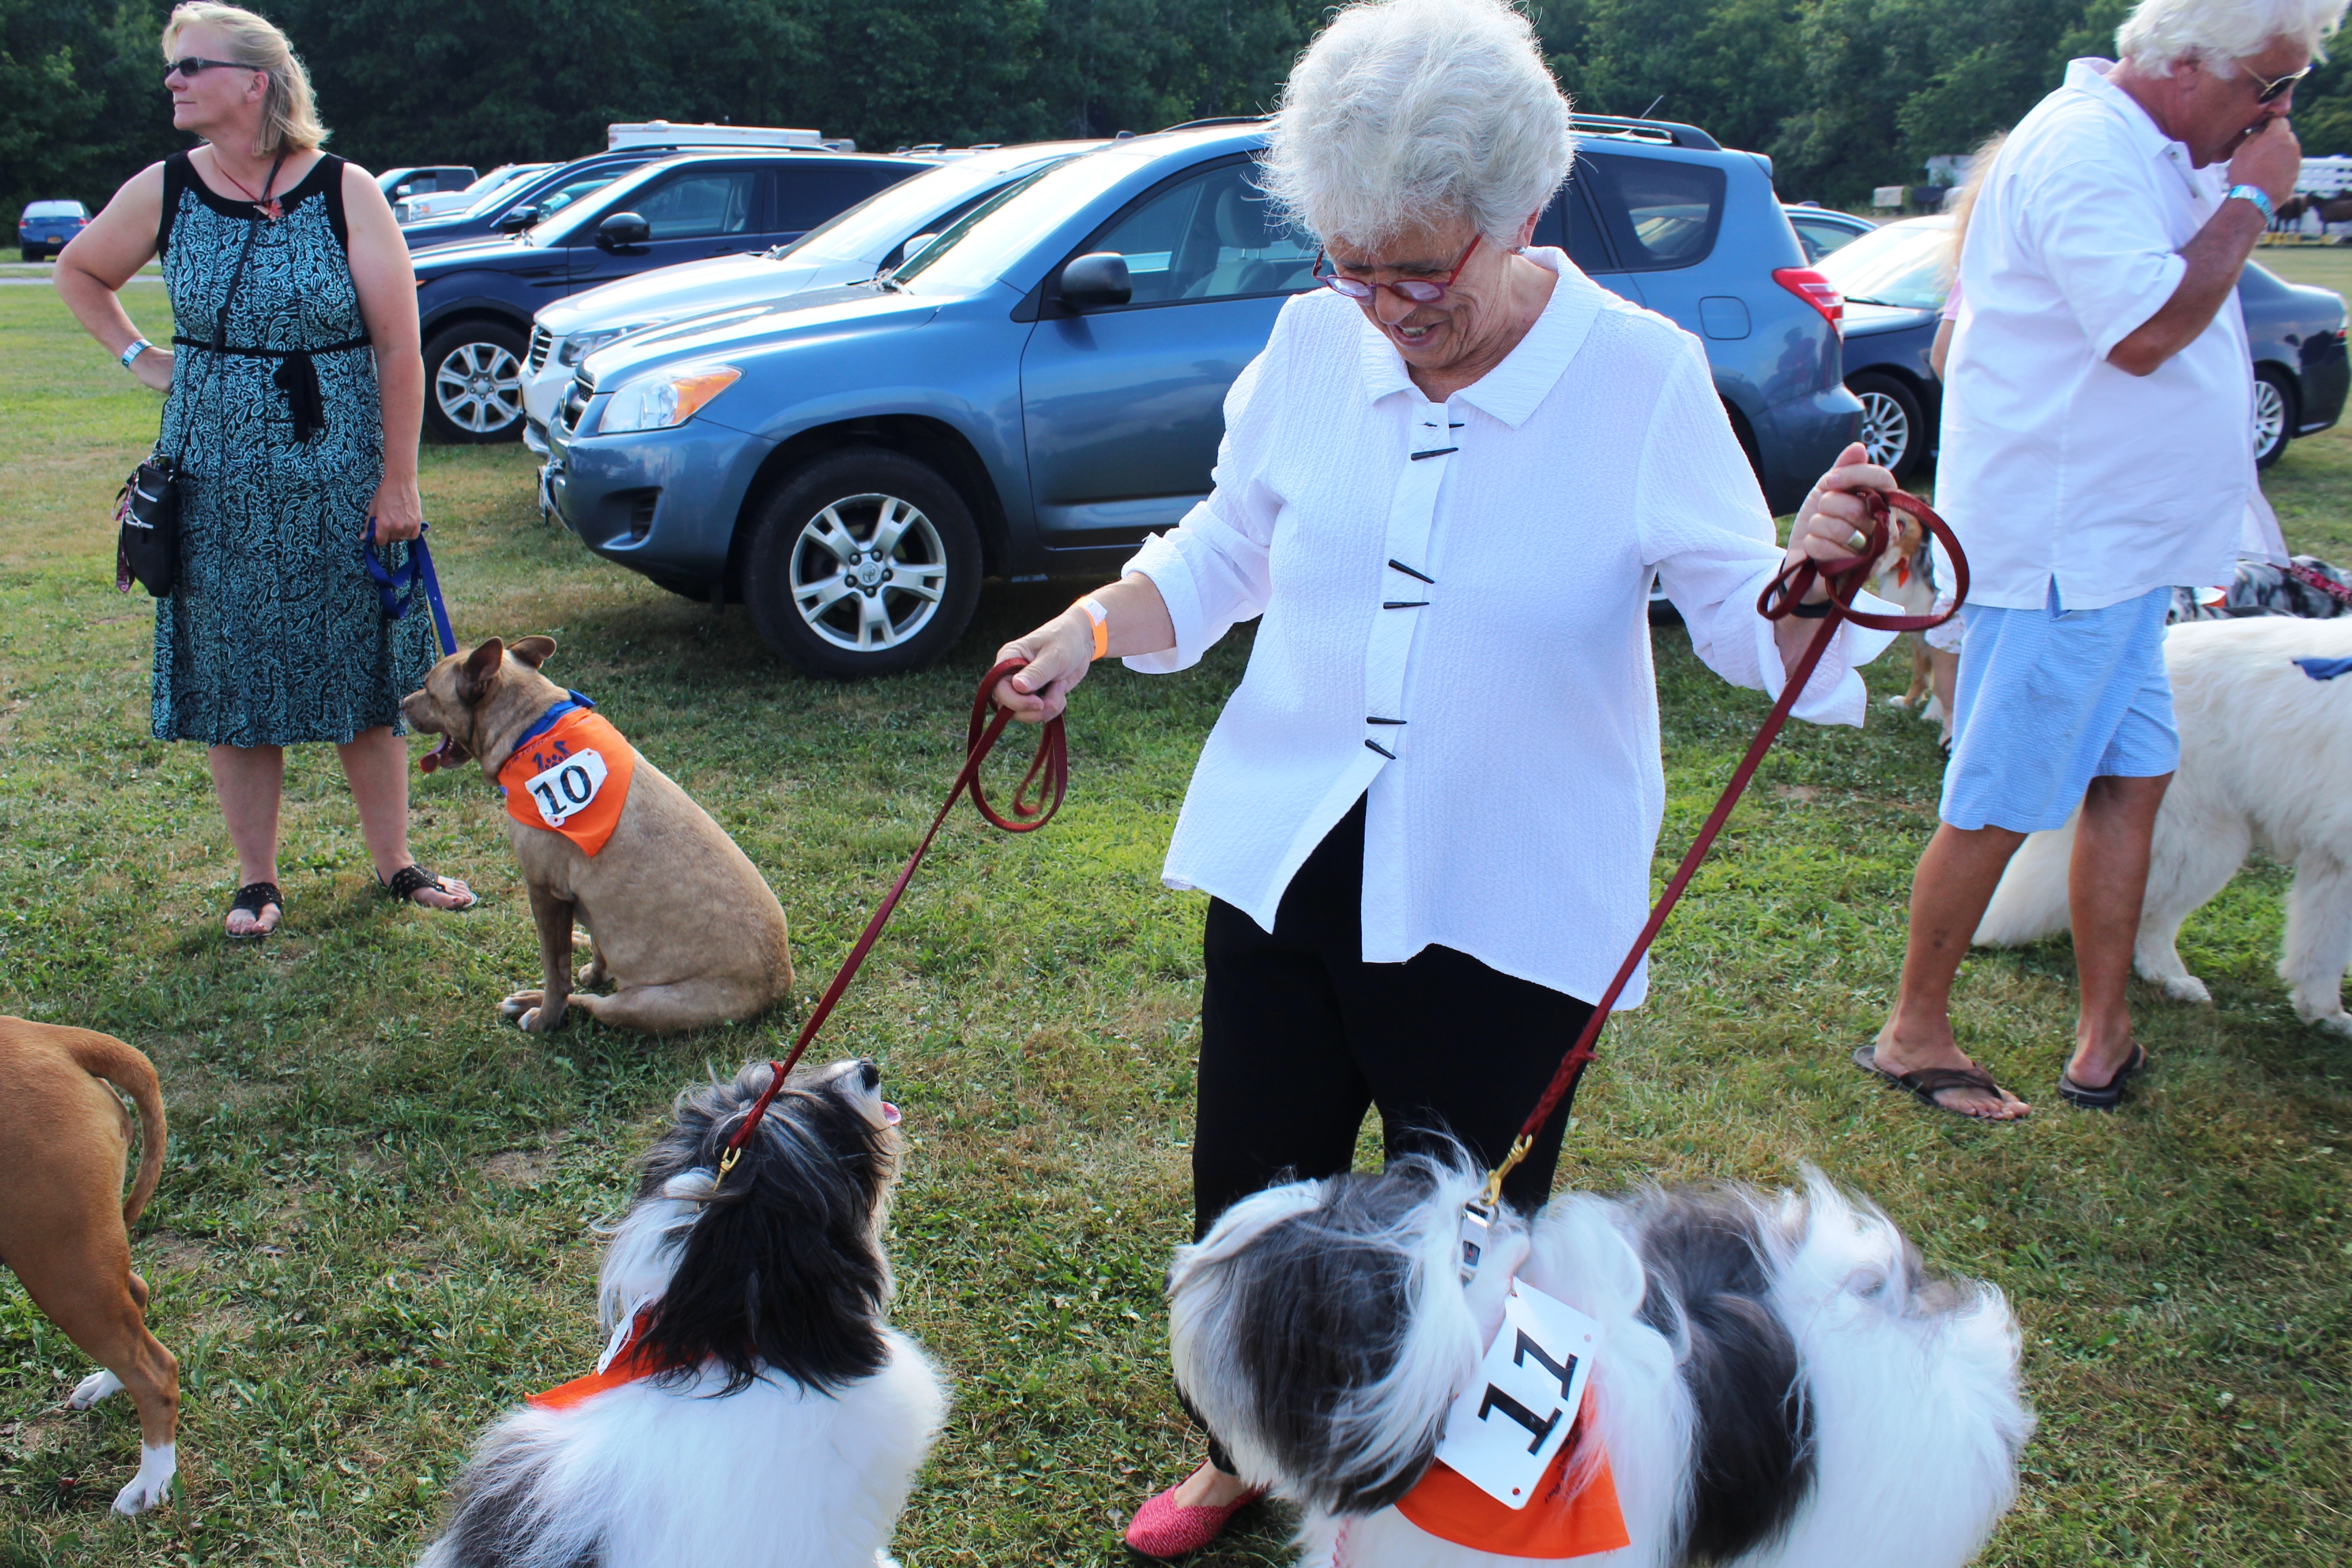 Woman looking at two dogs at the Saratoga Dog & Pony Show to benefit AIM Services, Inc.